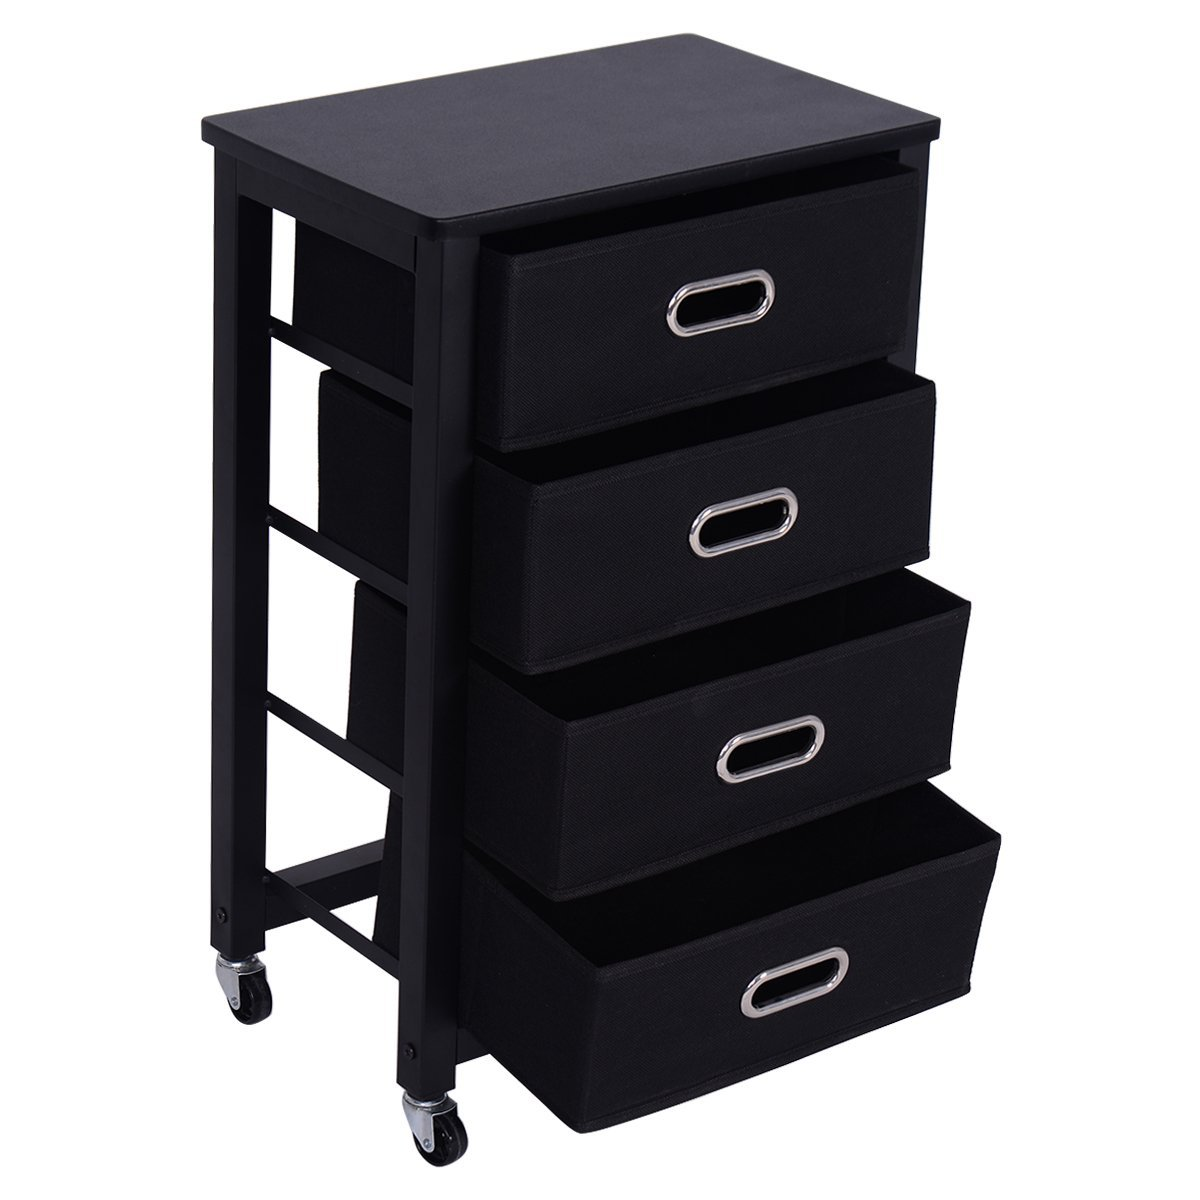 Giantex Rolling File Cabinet Heavy Duty Mobile Storage Filing Cabinet w/ 4 Drawers Black